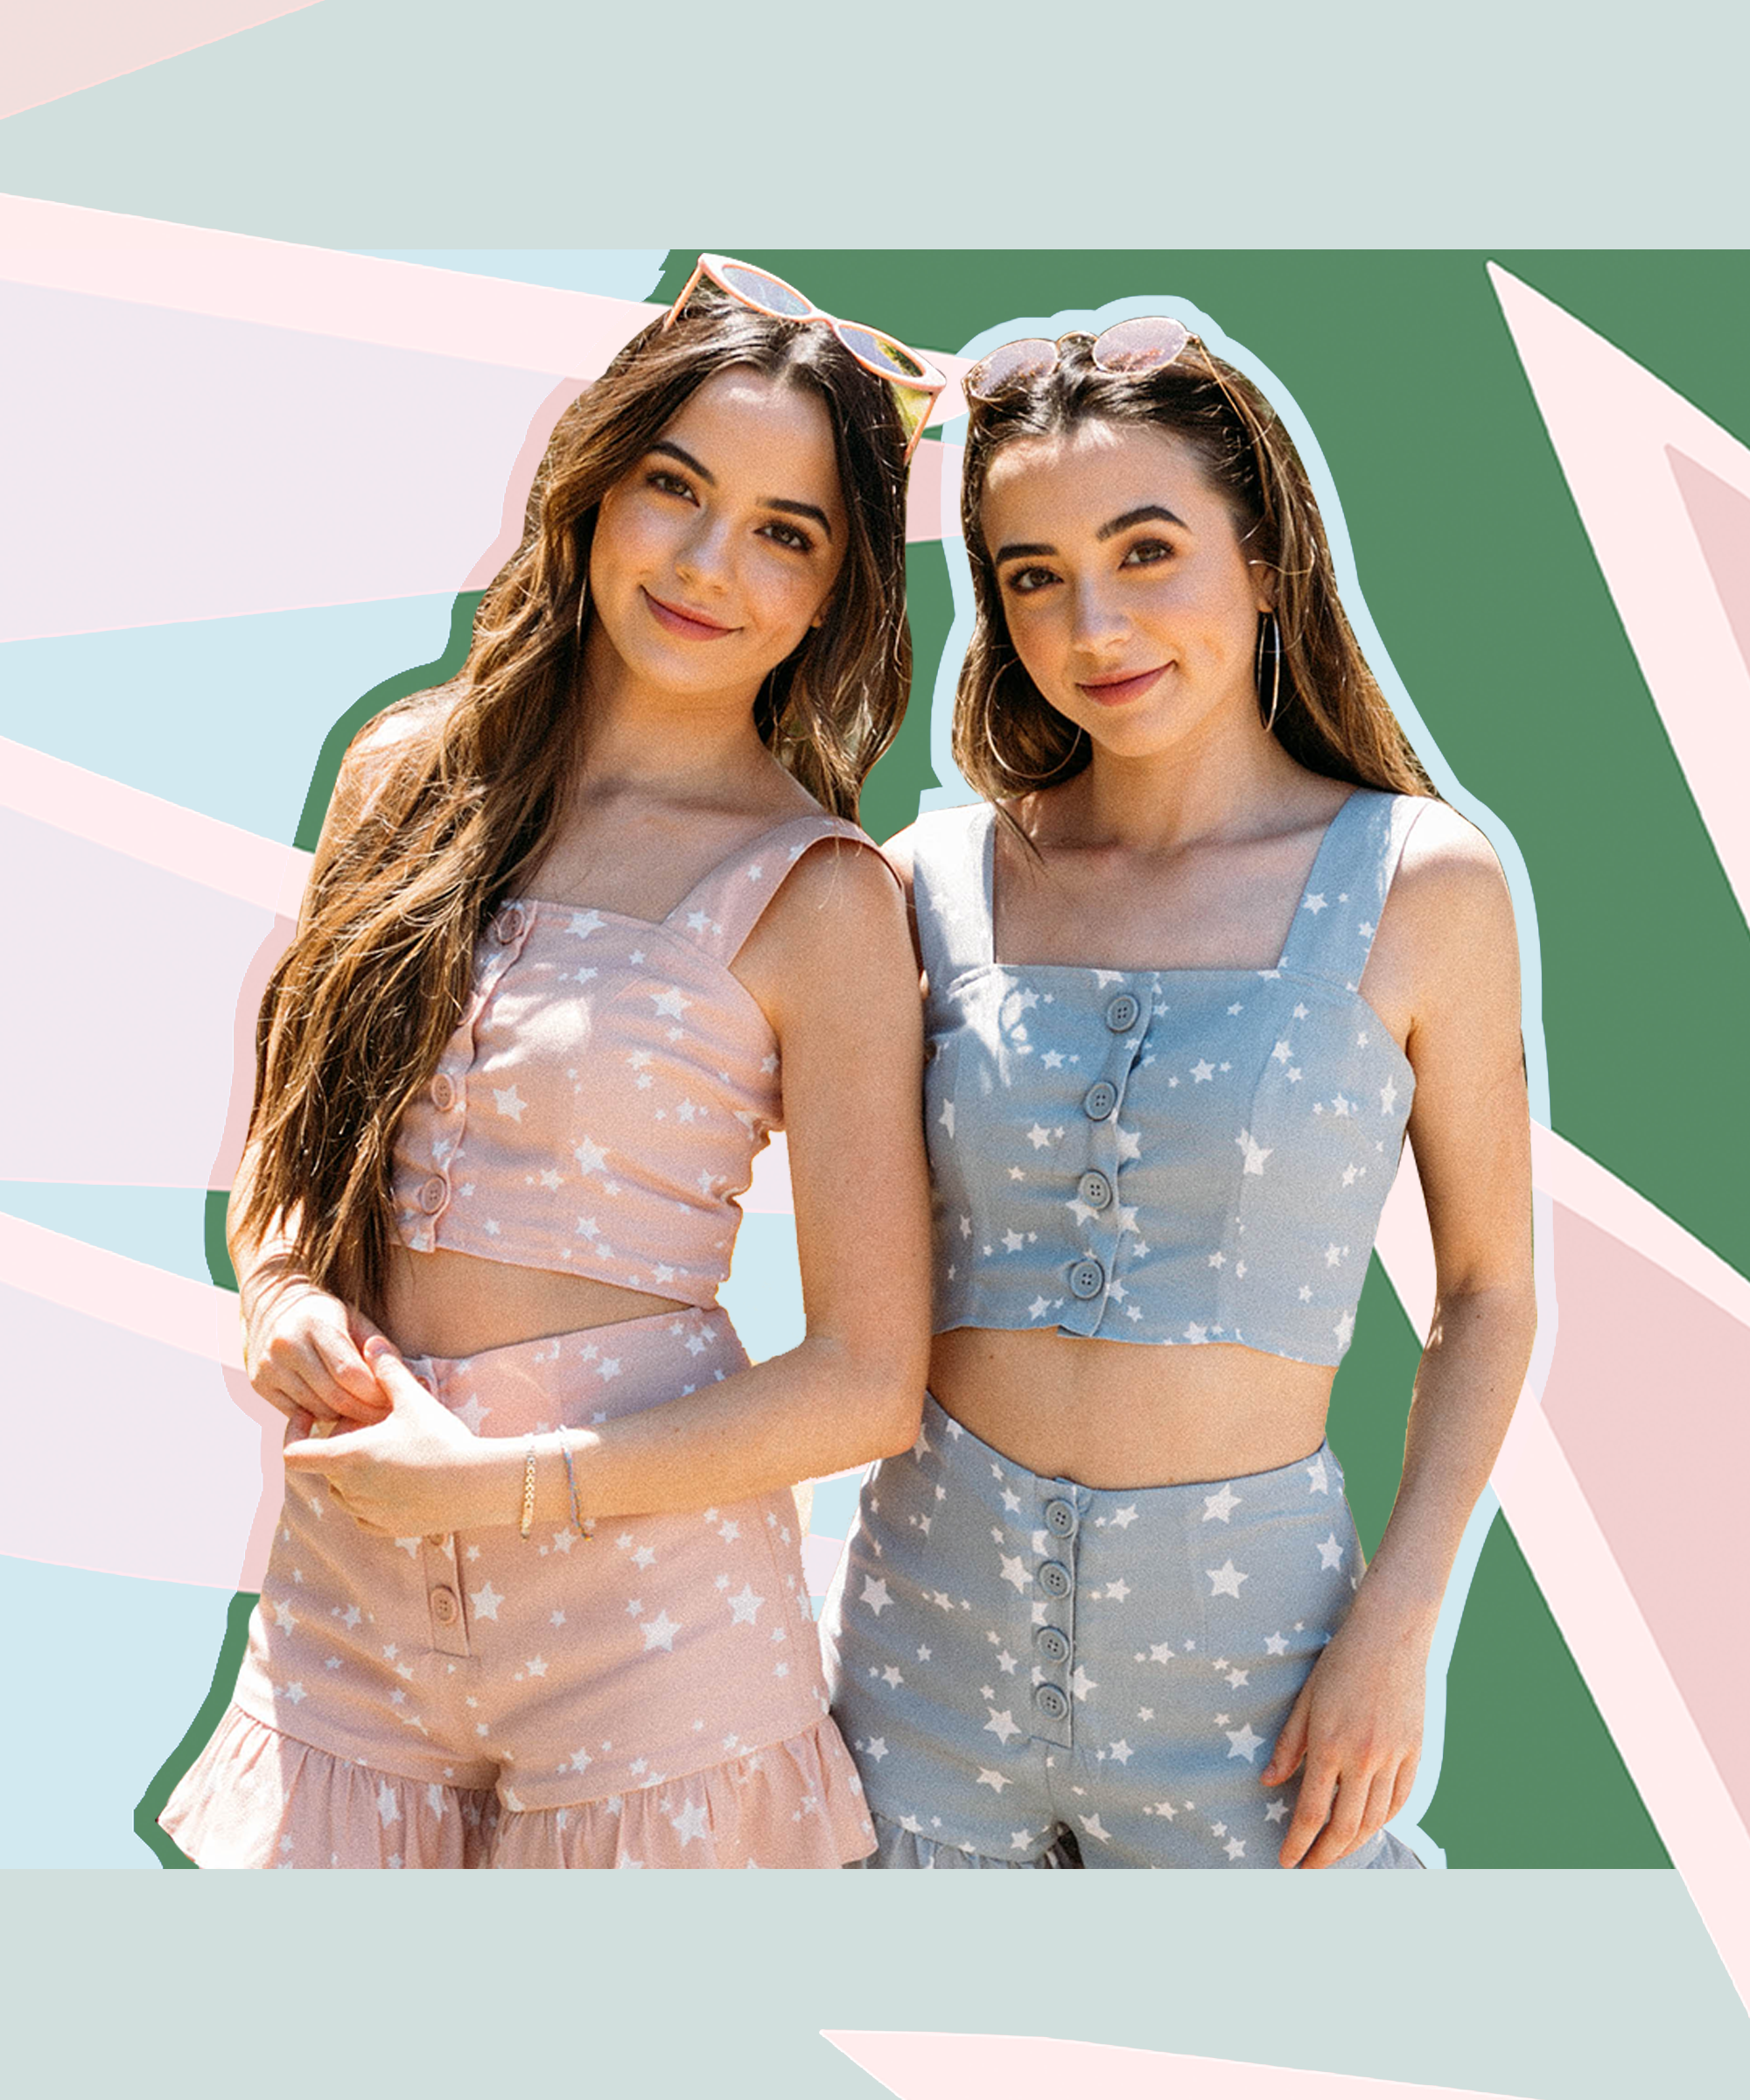 3f85dc6a0 The Dolan Twins Fame & Business Of Twinning On YouTube